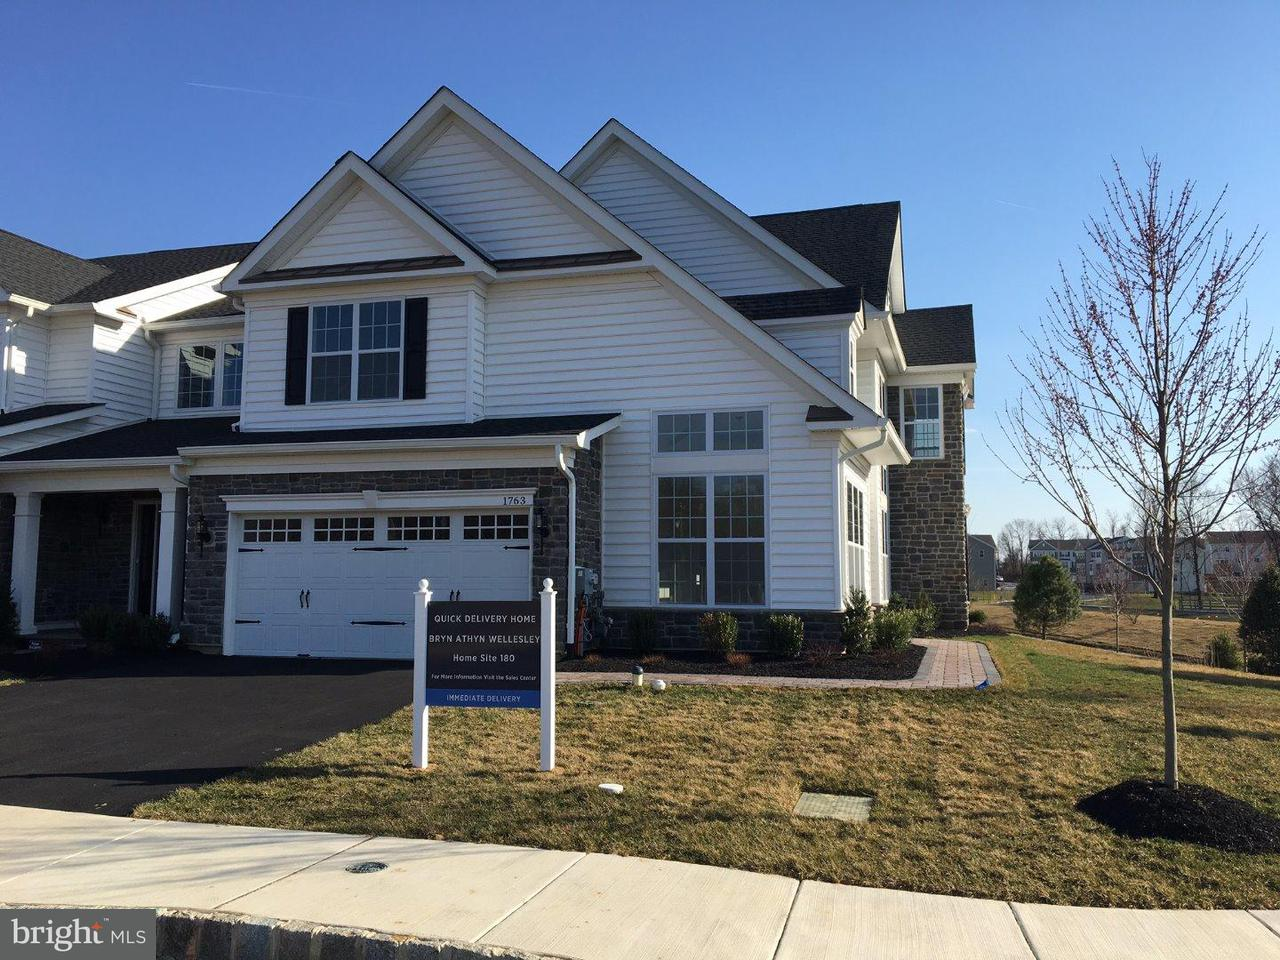 Townhouse for Sale at 1761 LOCUST Avenue Levittown, Pennsylvania 19054 United States